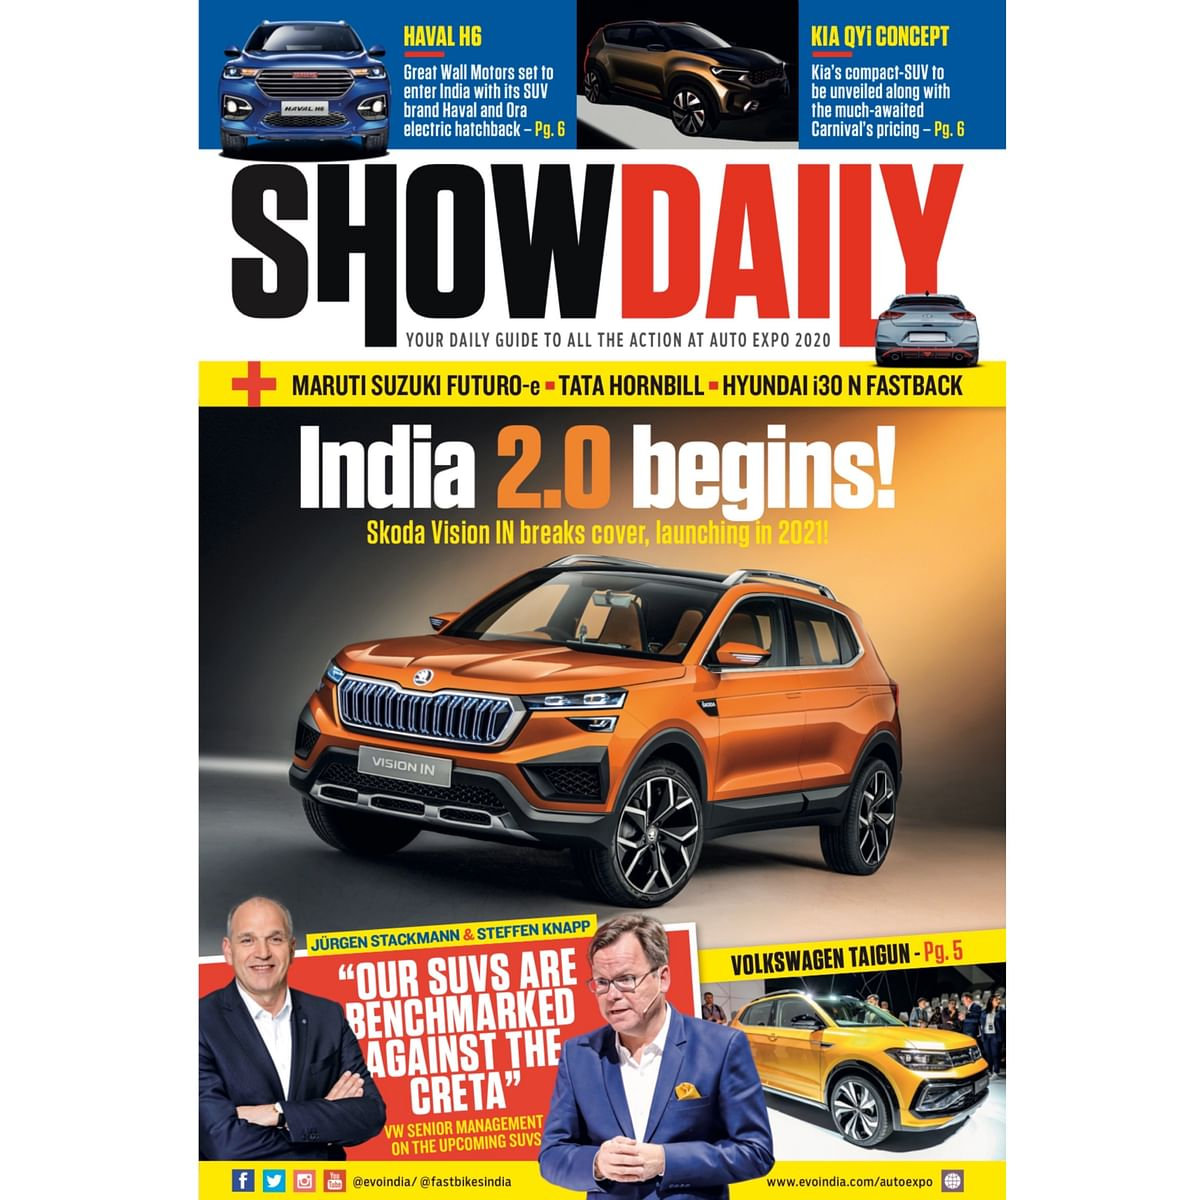 Day 1: Auto Expo Show Daily